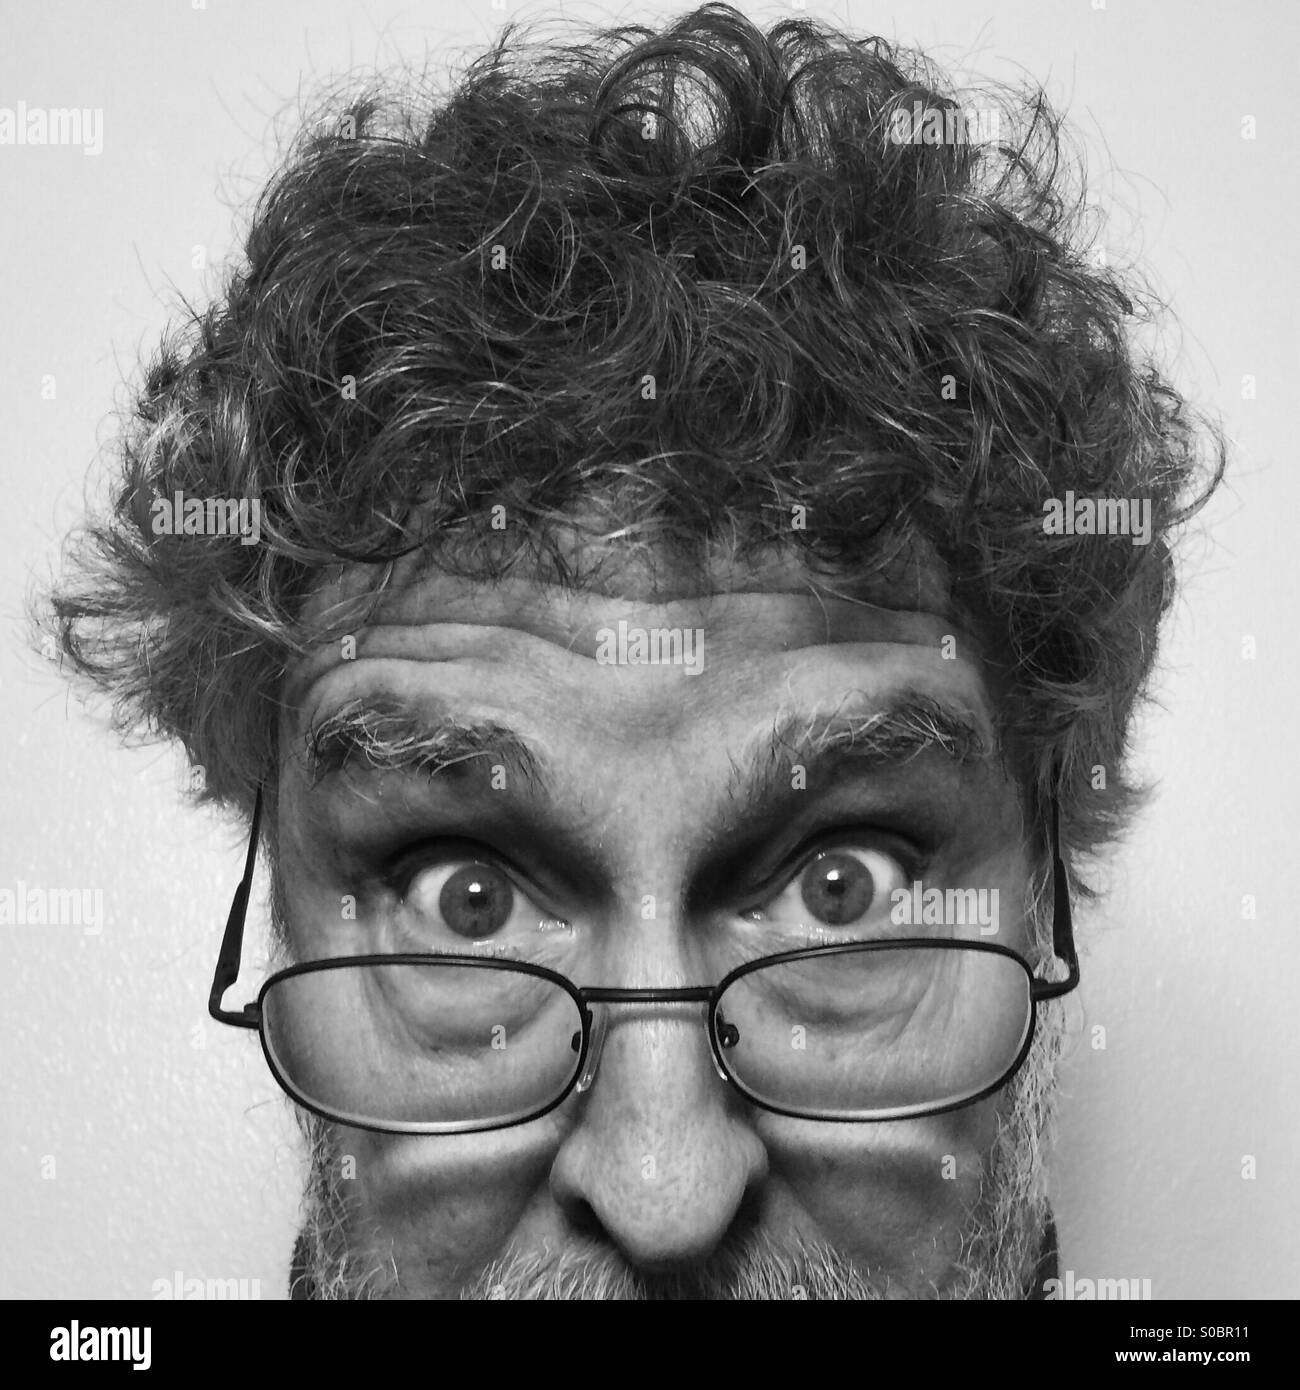 White Man, 64, bearded, wearing glasses, extreme close-up of face - Stock Image